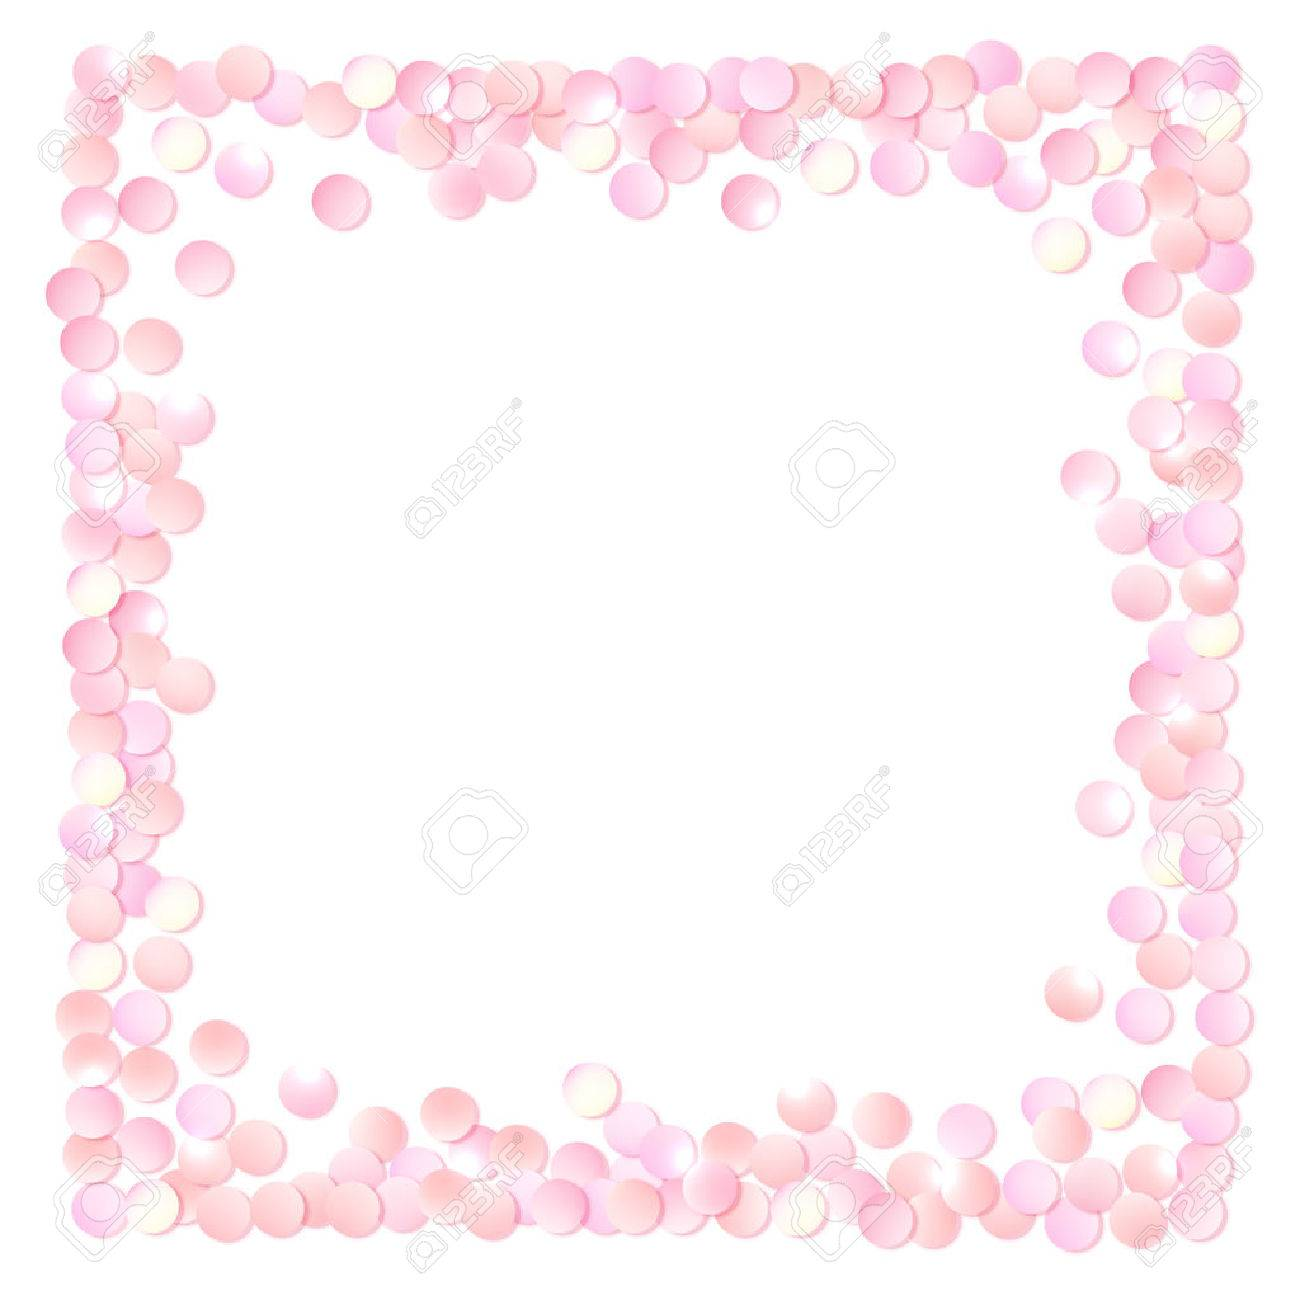 Pink realistic square confetti frame design template for gift pink realistic square confetti frame design template for gift certificate voucher ad yadclub Gallery